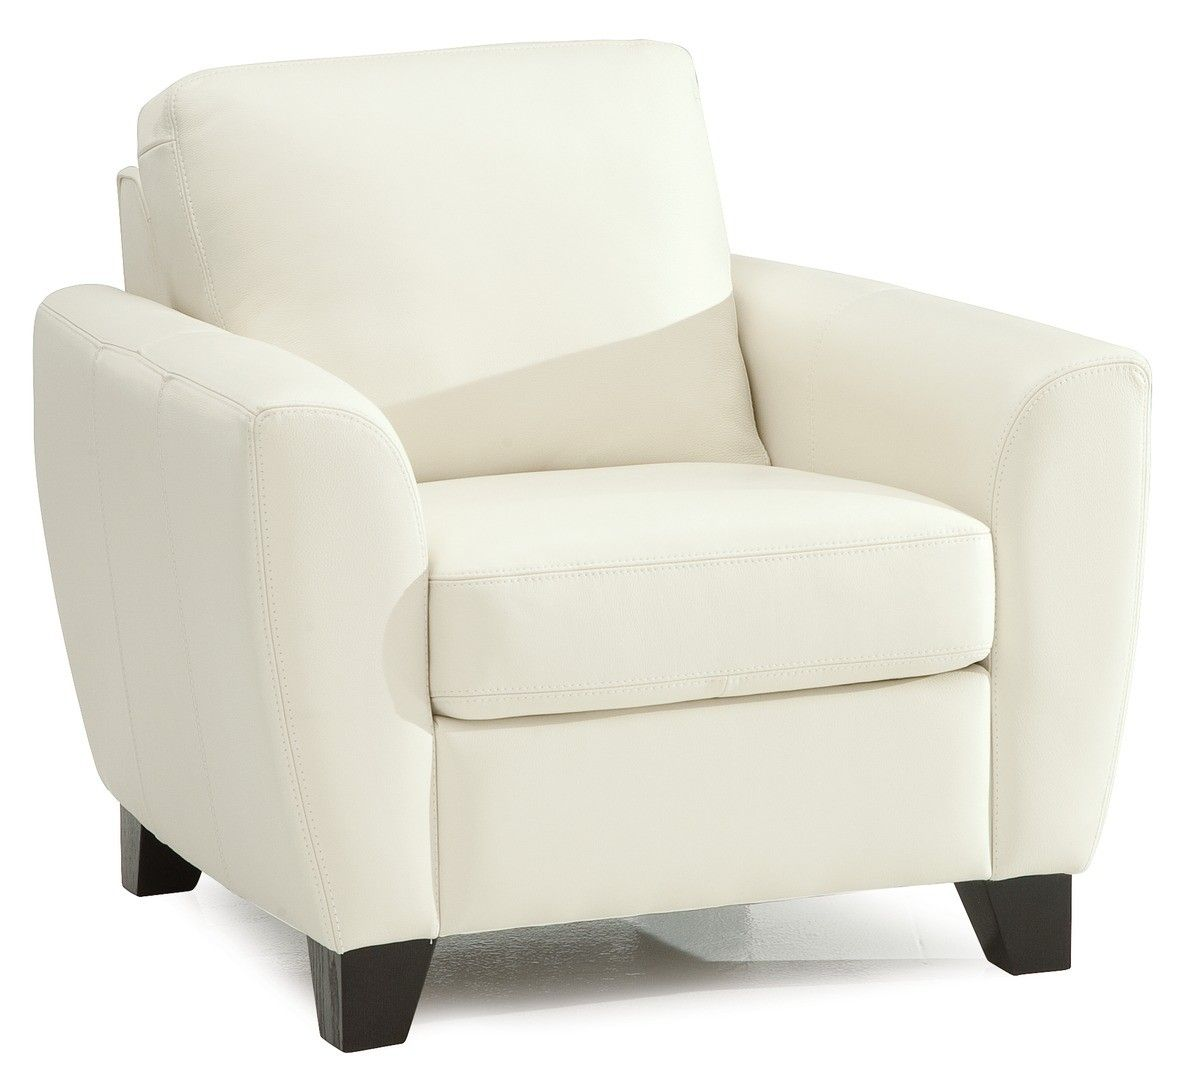 Marymount Armchair in Broadway Alabaster leather Grade 3000